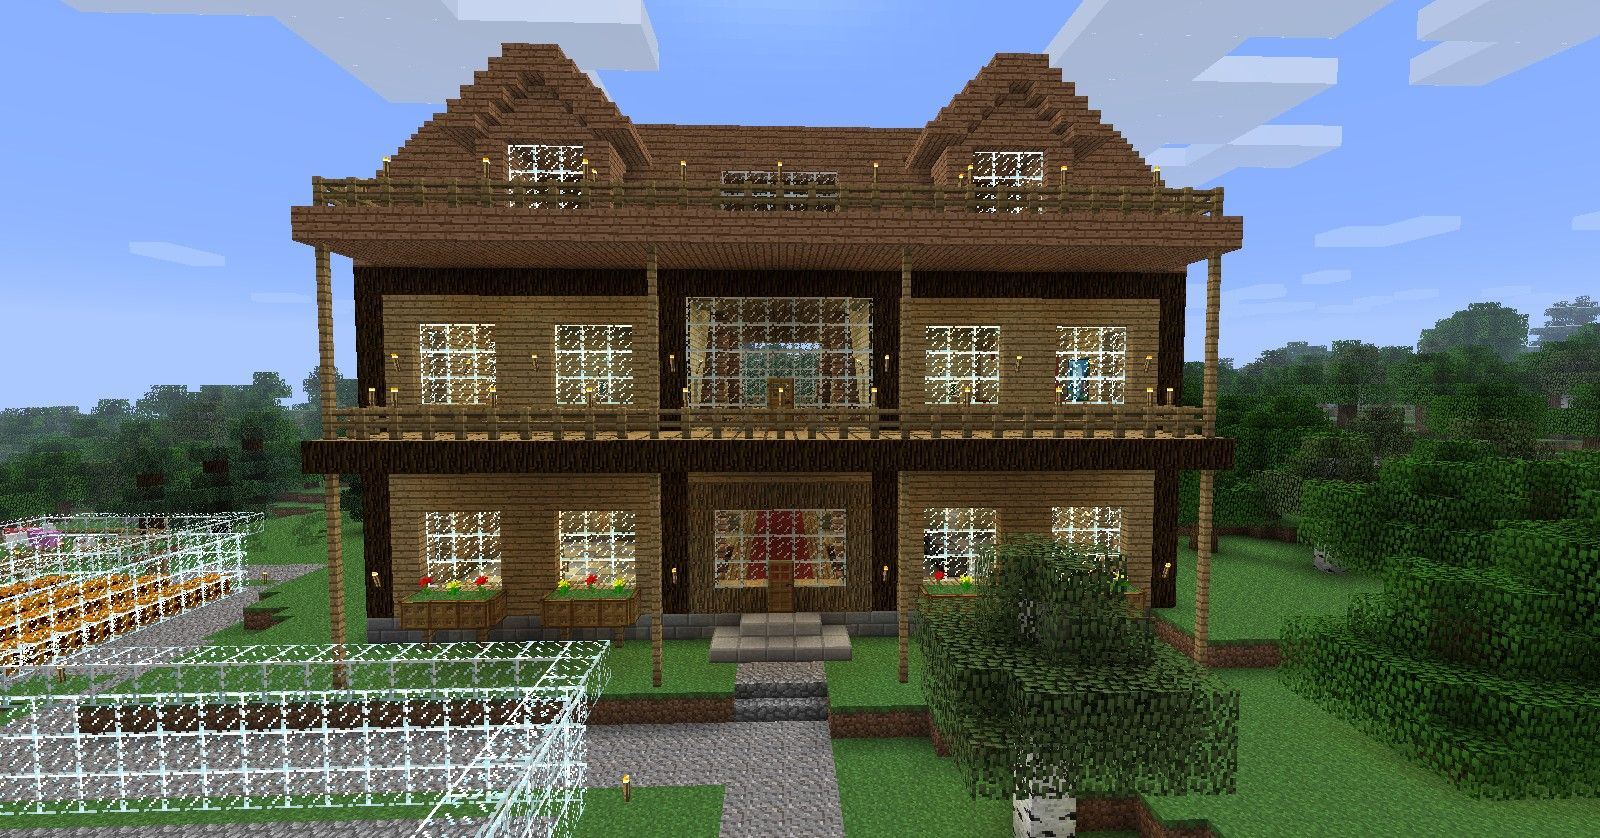 Pics For   Minecraft House Designs Xbox 360. Pics For   Minecraft House Designs Xbox 360   RILEY   Pinterest